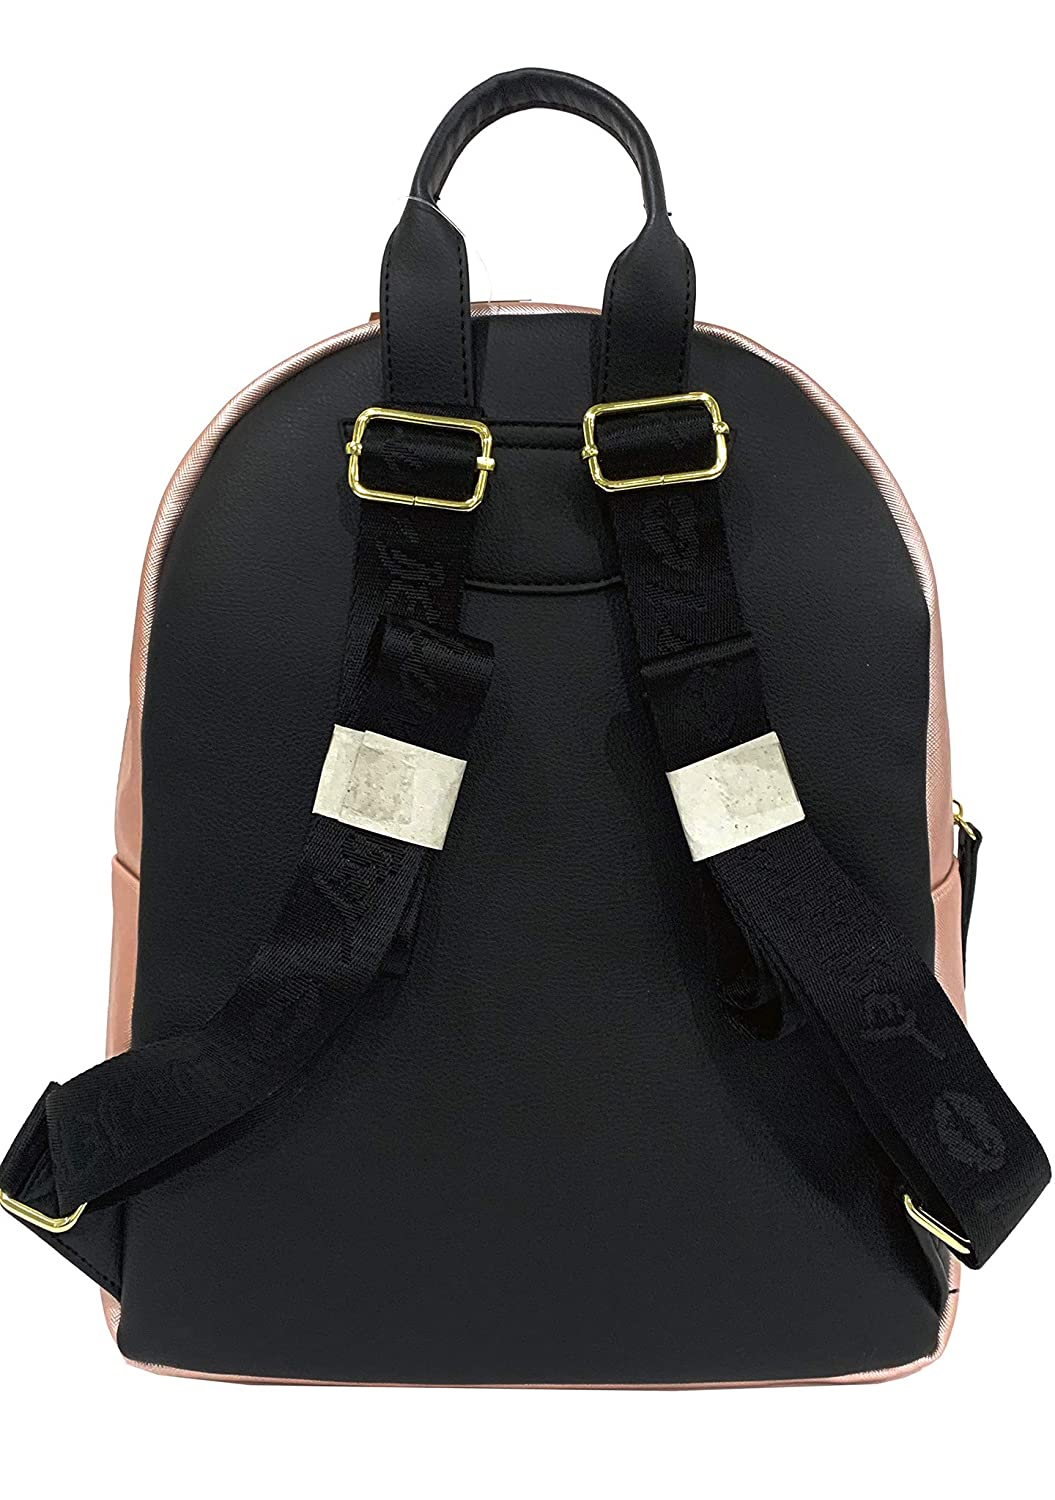 Betsey Johnson LBDEBBIE Love at First Sight Backpack in Rose Black